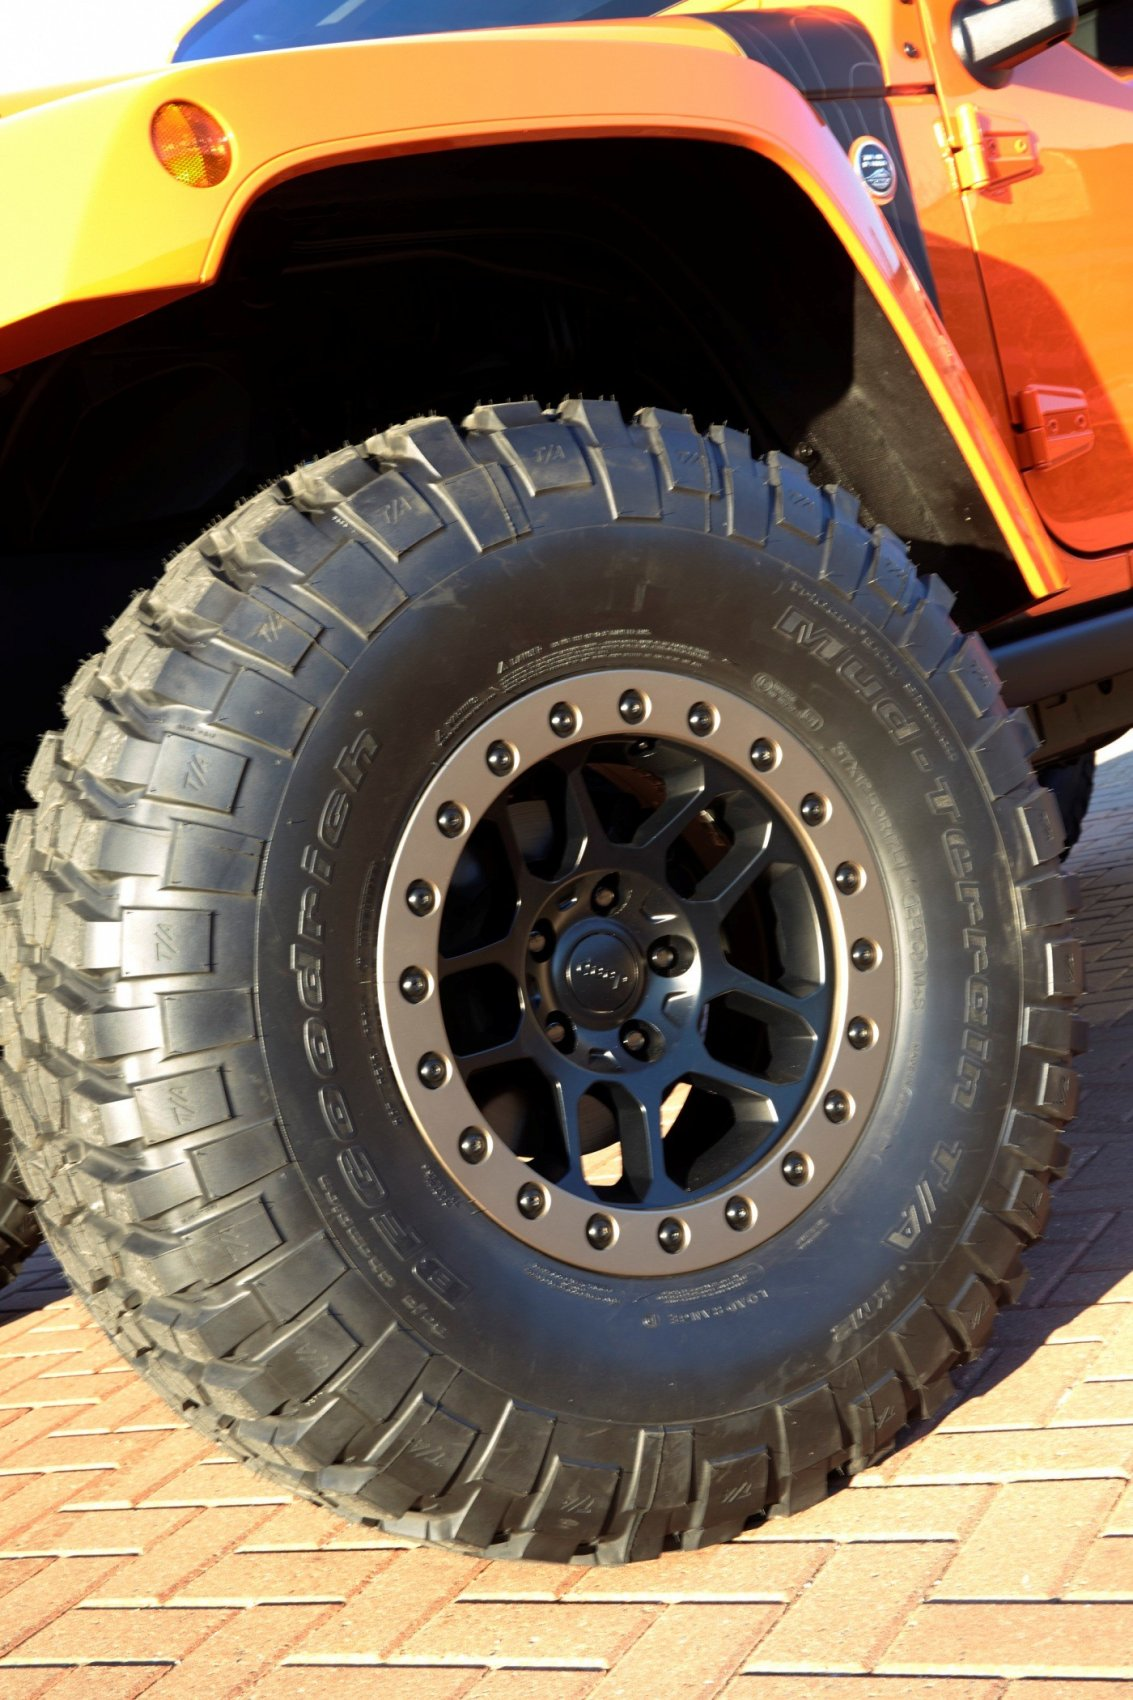 Jeep 4 Inch Lift >> Jeep Wrangler MOAB Concepts Are All Do-Able Via Latest MOPAR Upgrades + Cool Option Animations